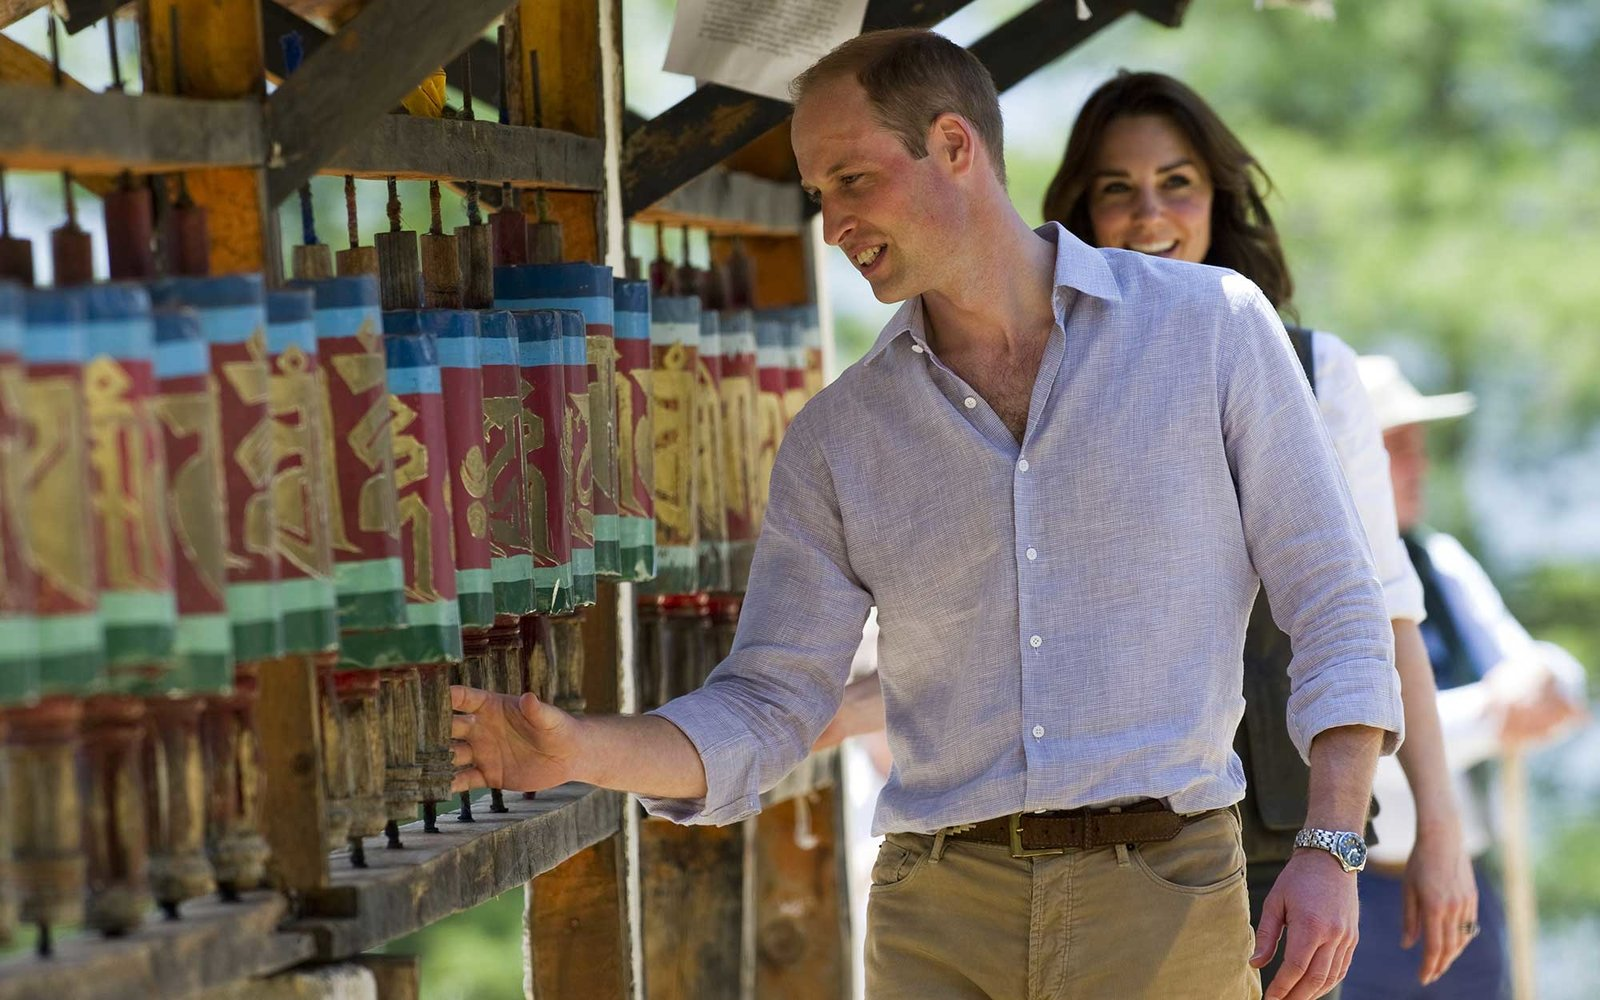 THIMPHU, BHUTAN - APRIL 15:  Prince William, Duke of Cambridge and Catherine, Duchess of Cambridge trek up to Tiger's Nest during a visit to Bhutan on the 15th April 2016 in Thimphu, Bhutan. The Royal couple are visiting Bhutan as part of a week long visi